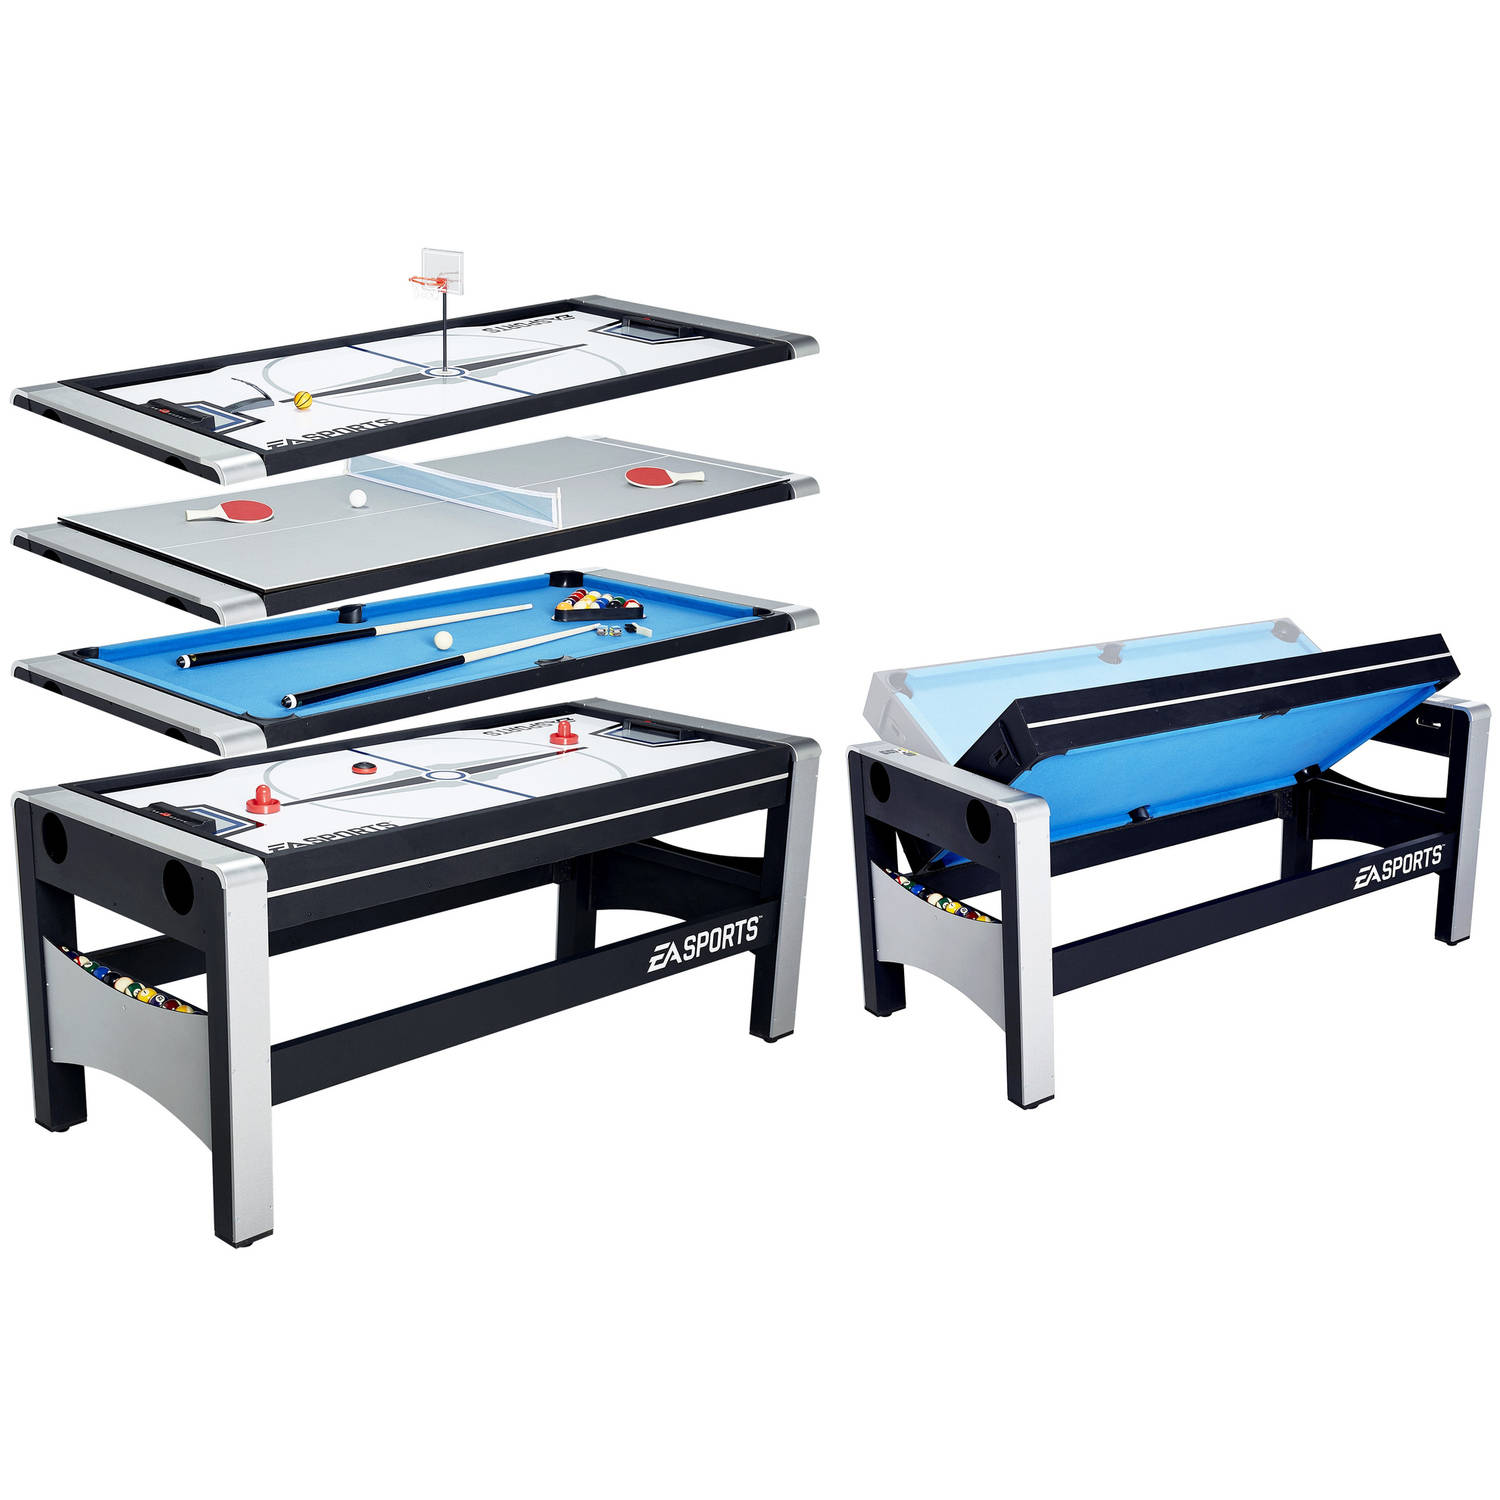 ESPN 72 Inch 4-in-1 Swivel Combo Game Table, 4 Games with Hockey, Billiards, Table Tennis and Finger Shoot Basketball